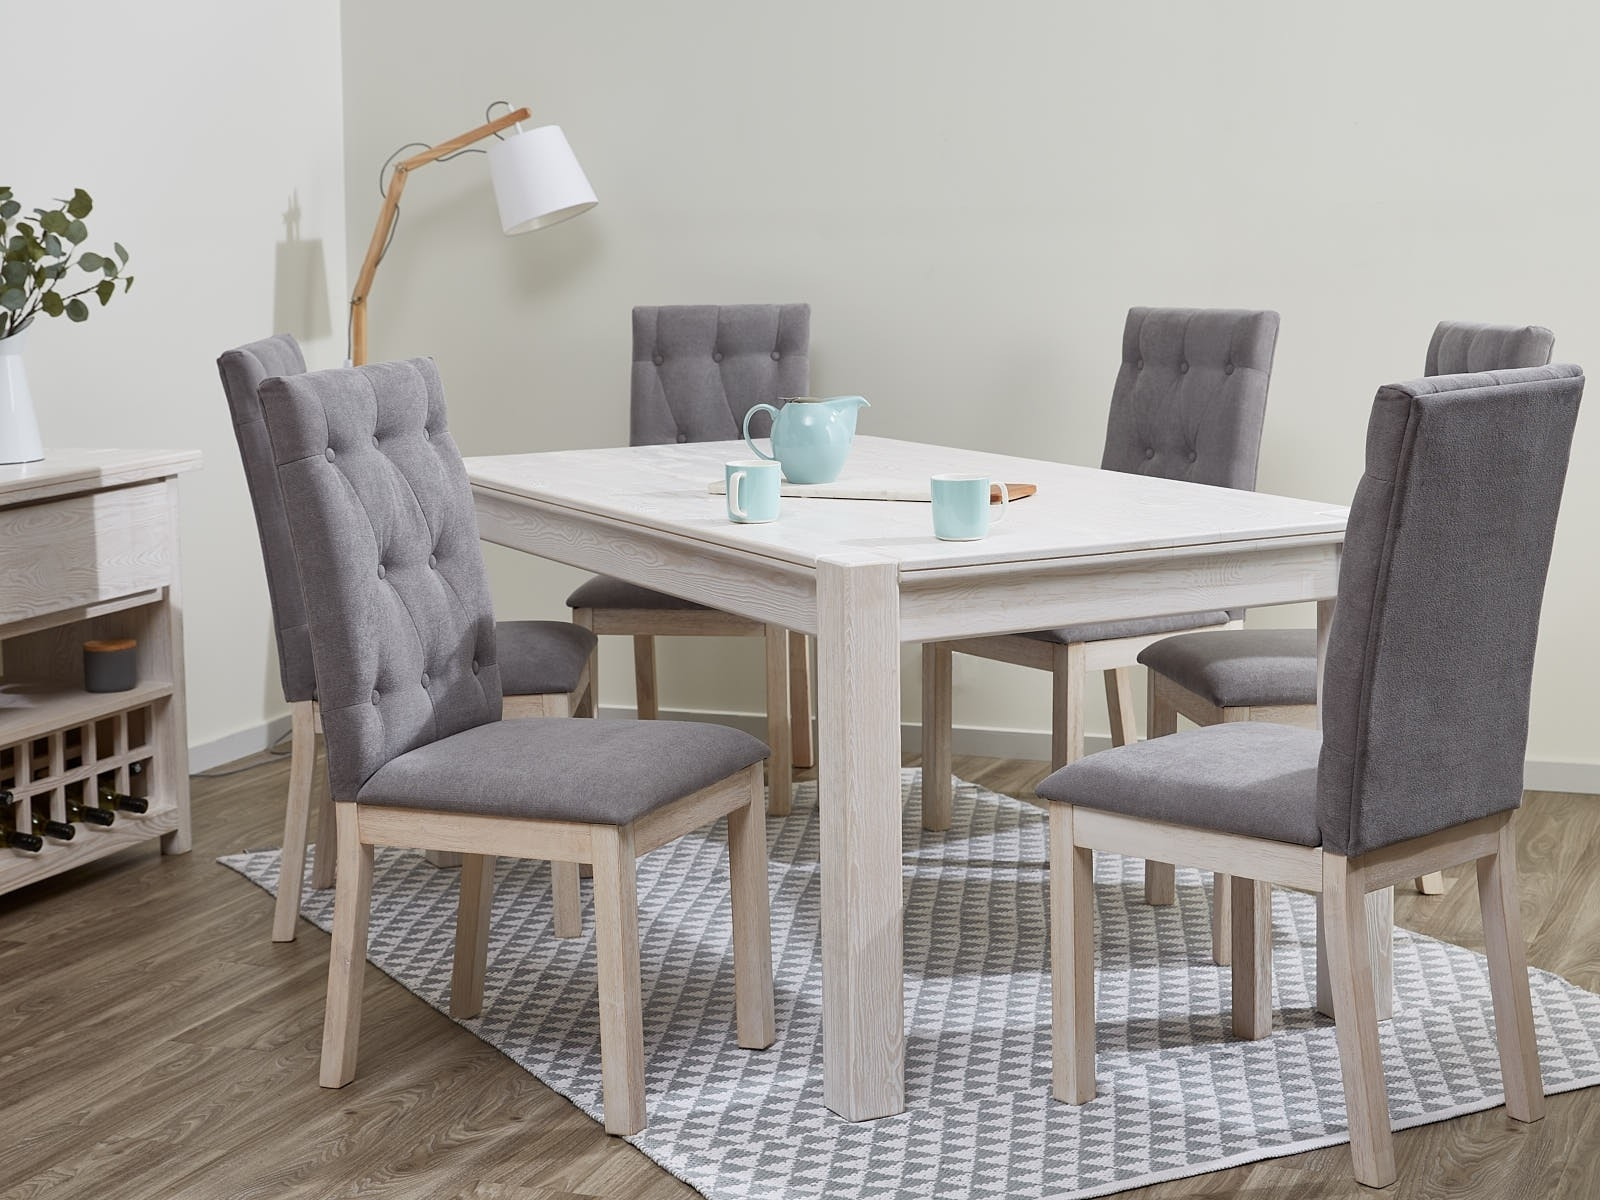 [%Sale: Fantastic Whitewash Dining Sets. 50% Off Rrp. Limited Stock For Preferred White Dining Suites|White Dining Suites Within 2018 Sale: Fantastic Whitewash Dining Sets. 50% Off Rrp. Limited Stock|Widely Used White Dining Suites With Sale: Fantastic Whitewash Dining Sets. 50% Off Rrp. Limited Stock|Latest Sale: Fantastic Whitewash Dining Sets. 50% Off Rrp (View 1 of 25)